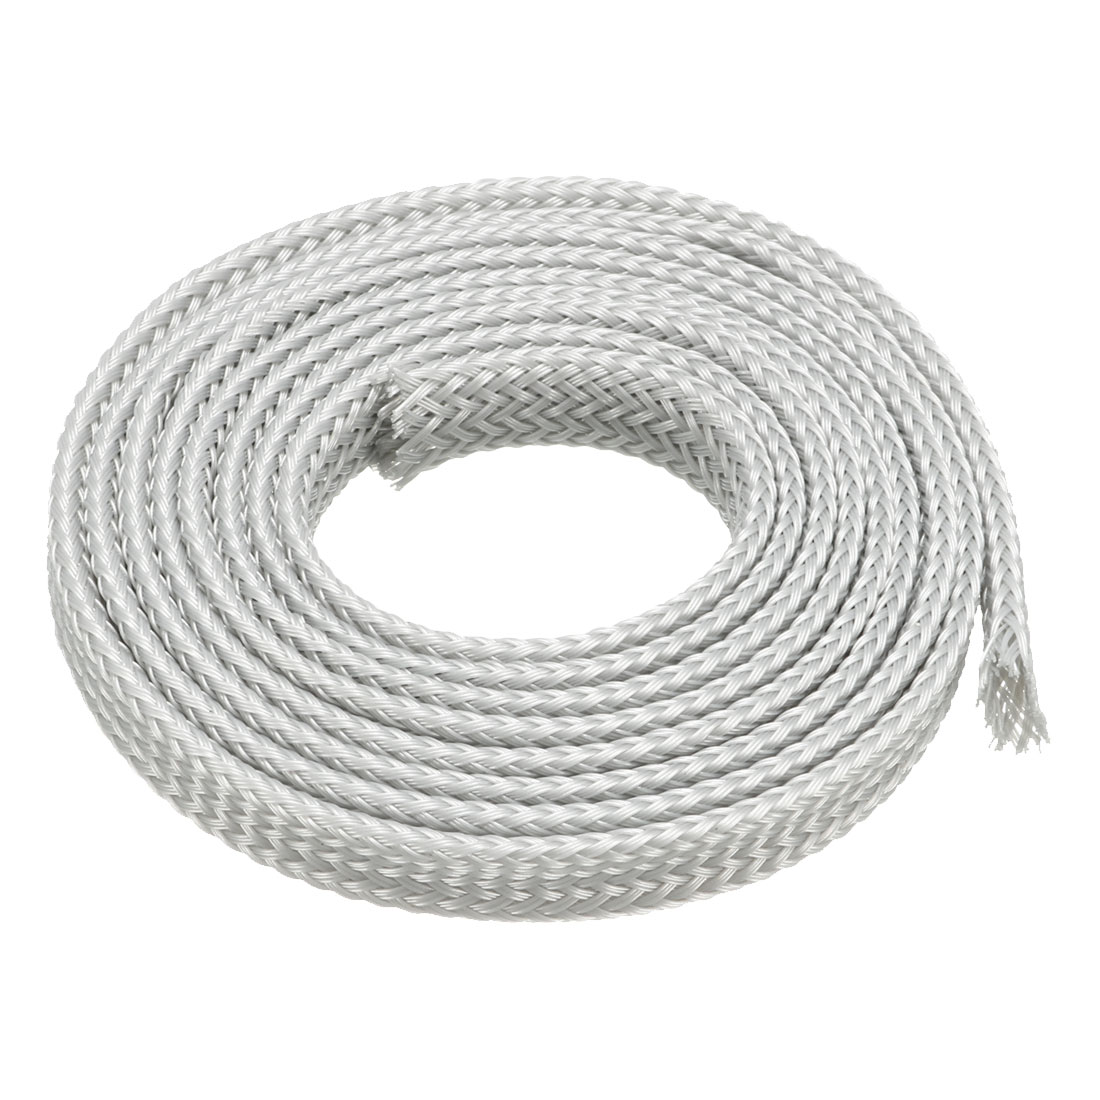 PET Braided Sleeving 3.3 Feet 1m Expandable Cable Wrap 6mm Diameter Wire Sheath Silver White